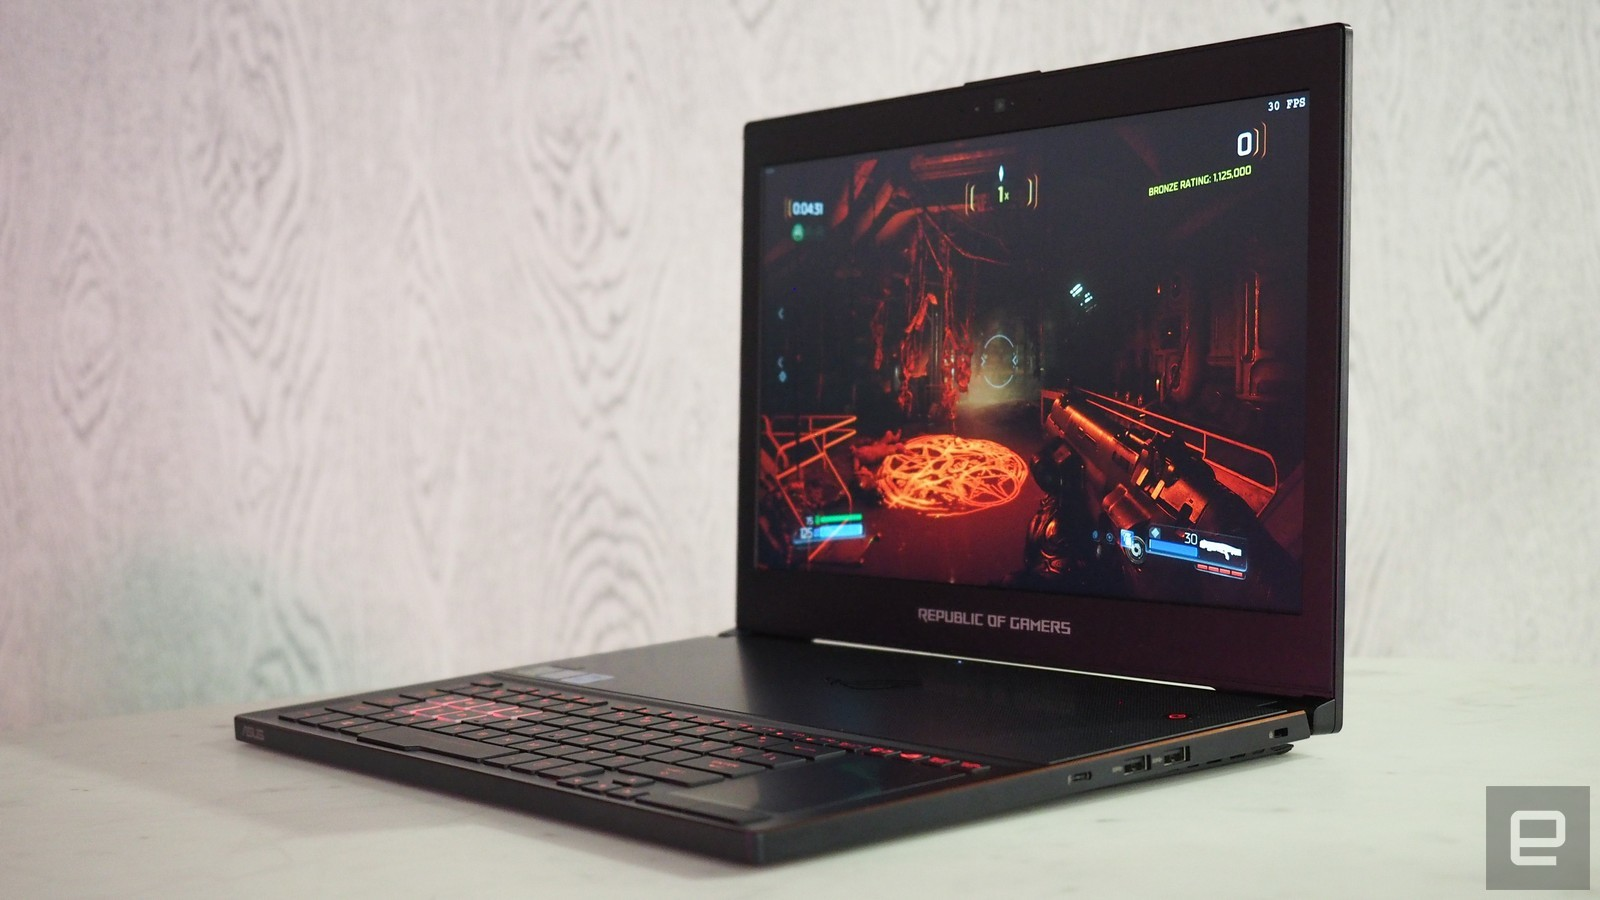 Best Smallest Laptop 2020 The best lightweight gaming laptops